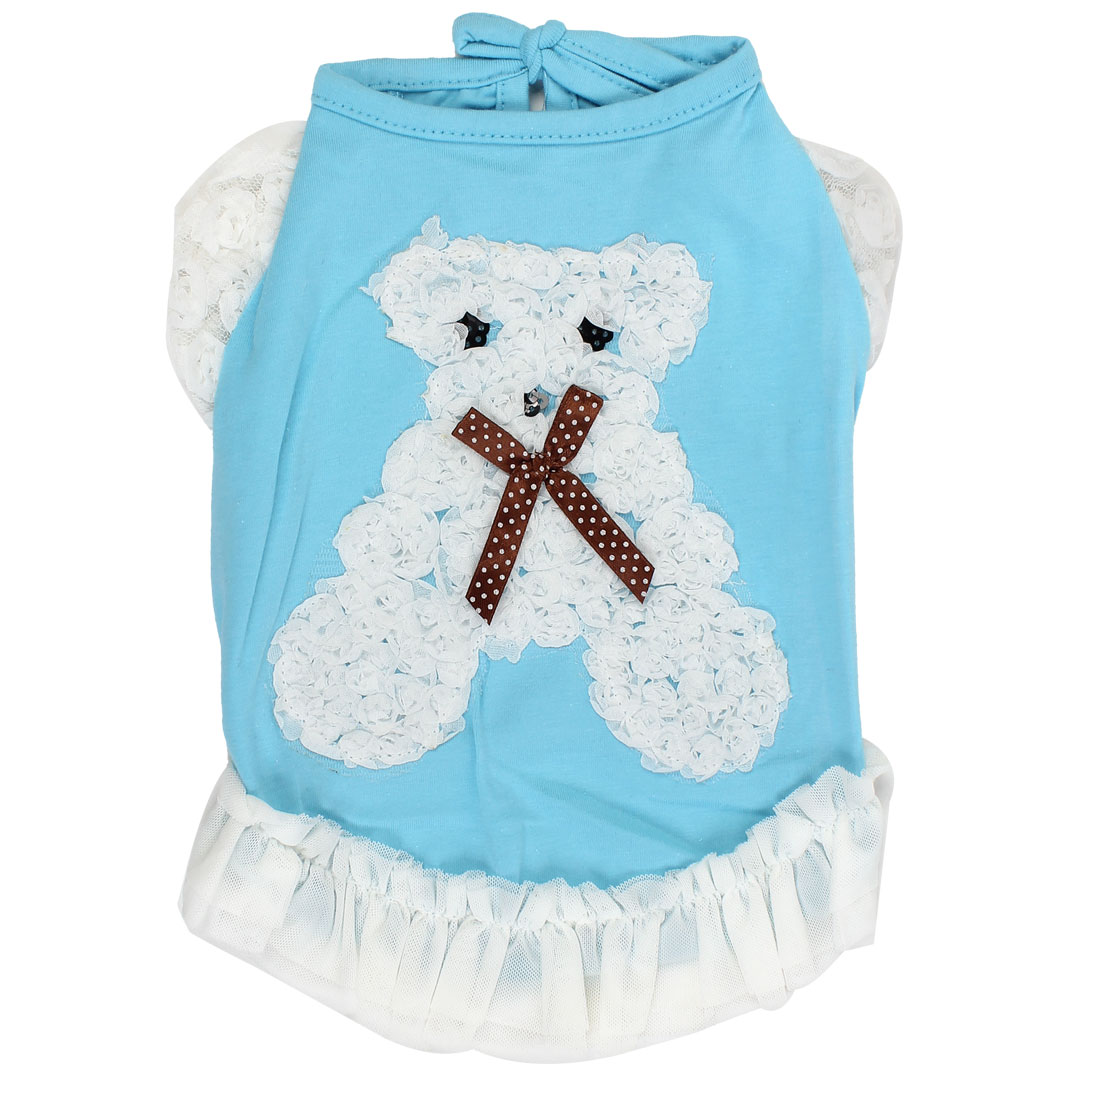 Pet Dog Summer Lace Bear Design T-Shirts Apparel Clothing Costume Blue Size S